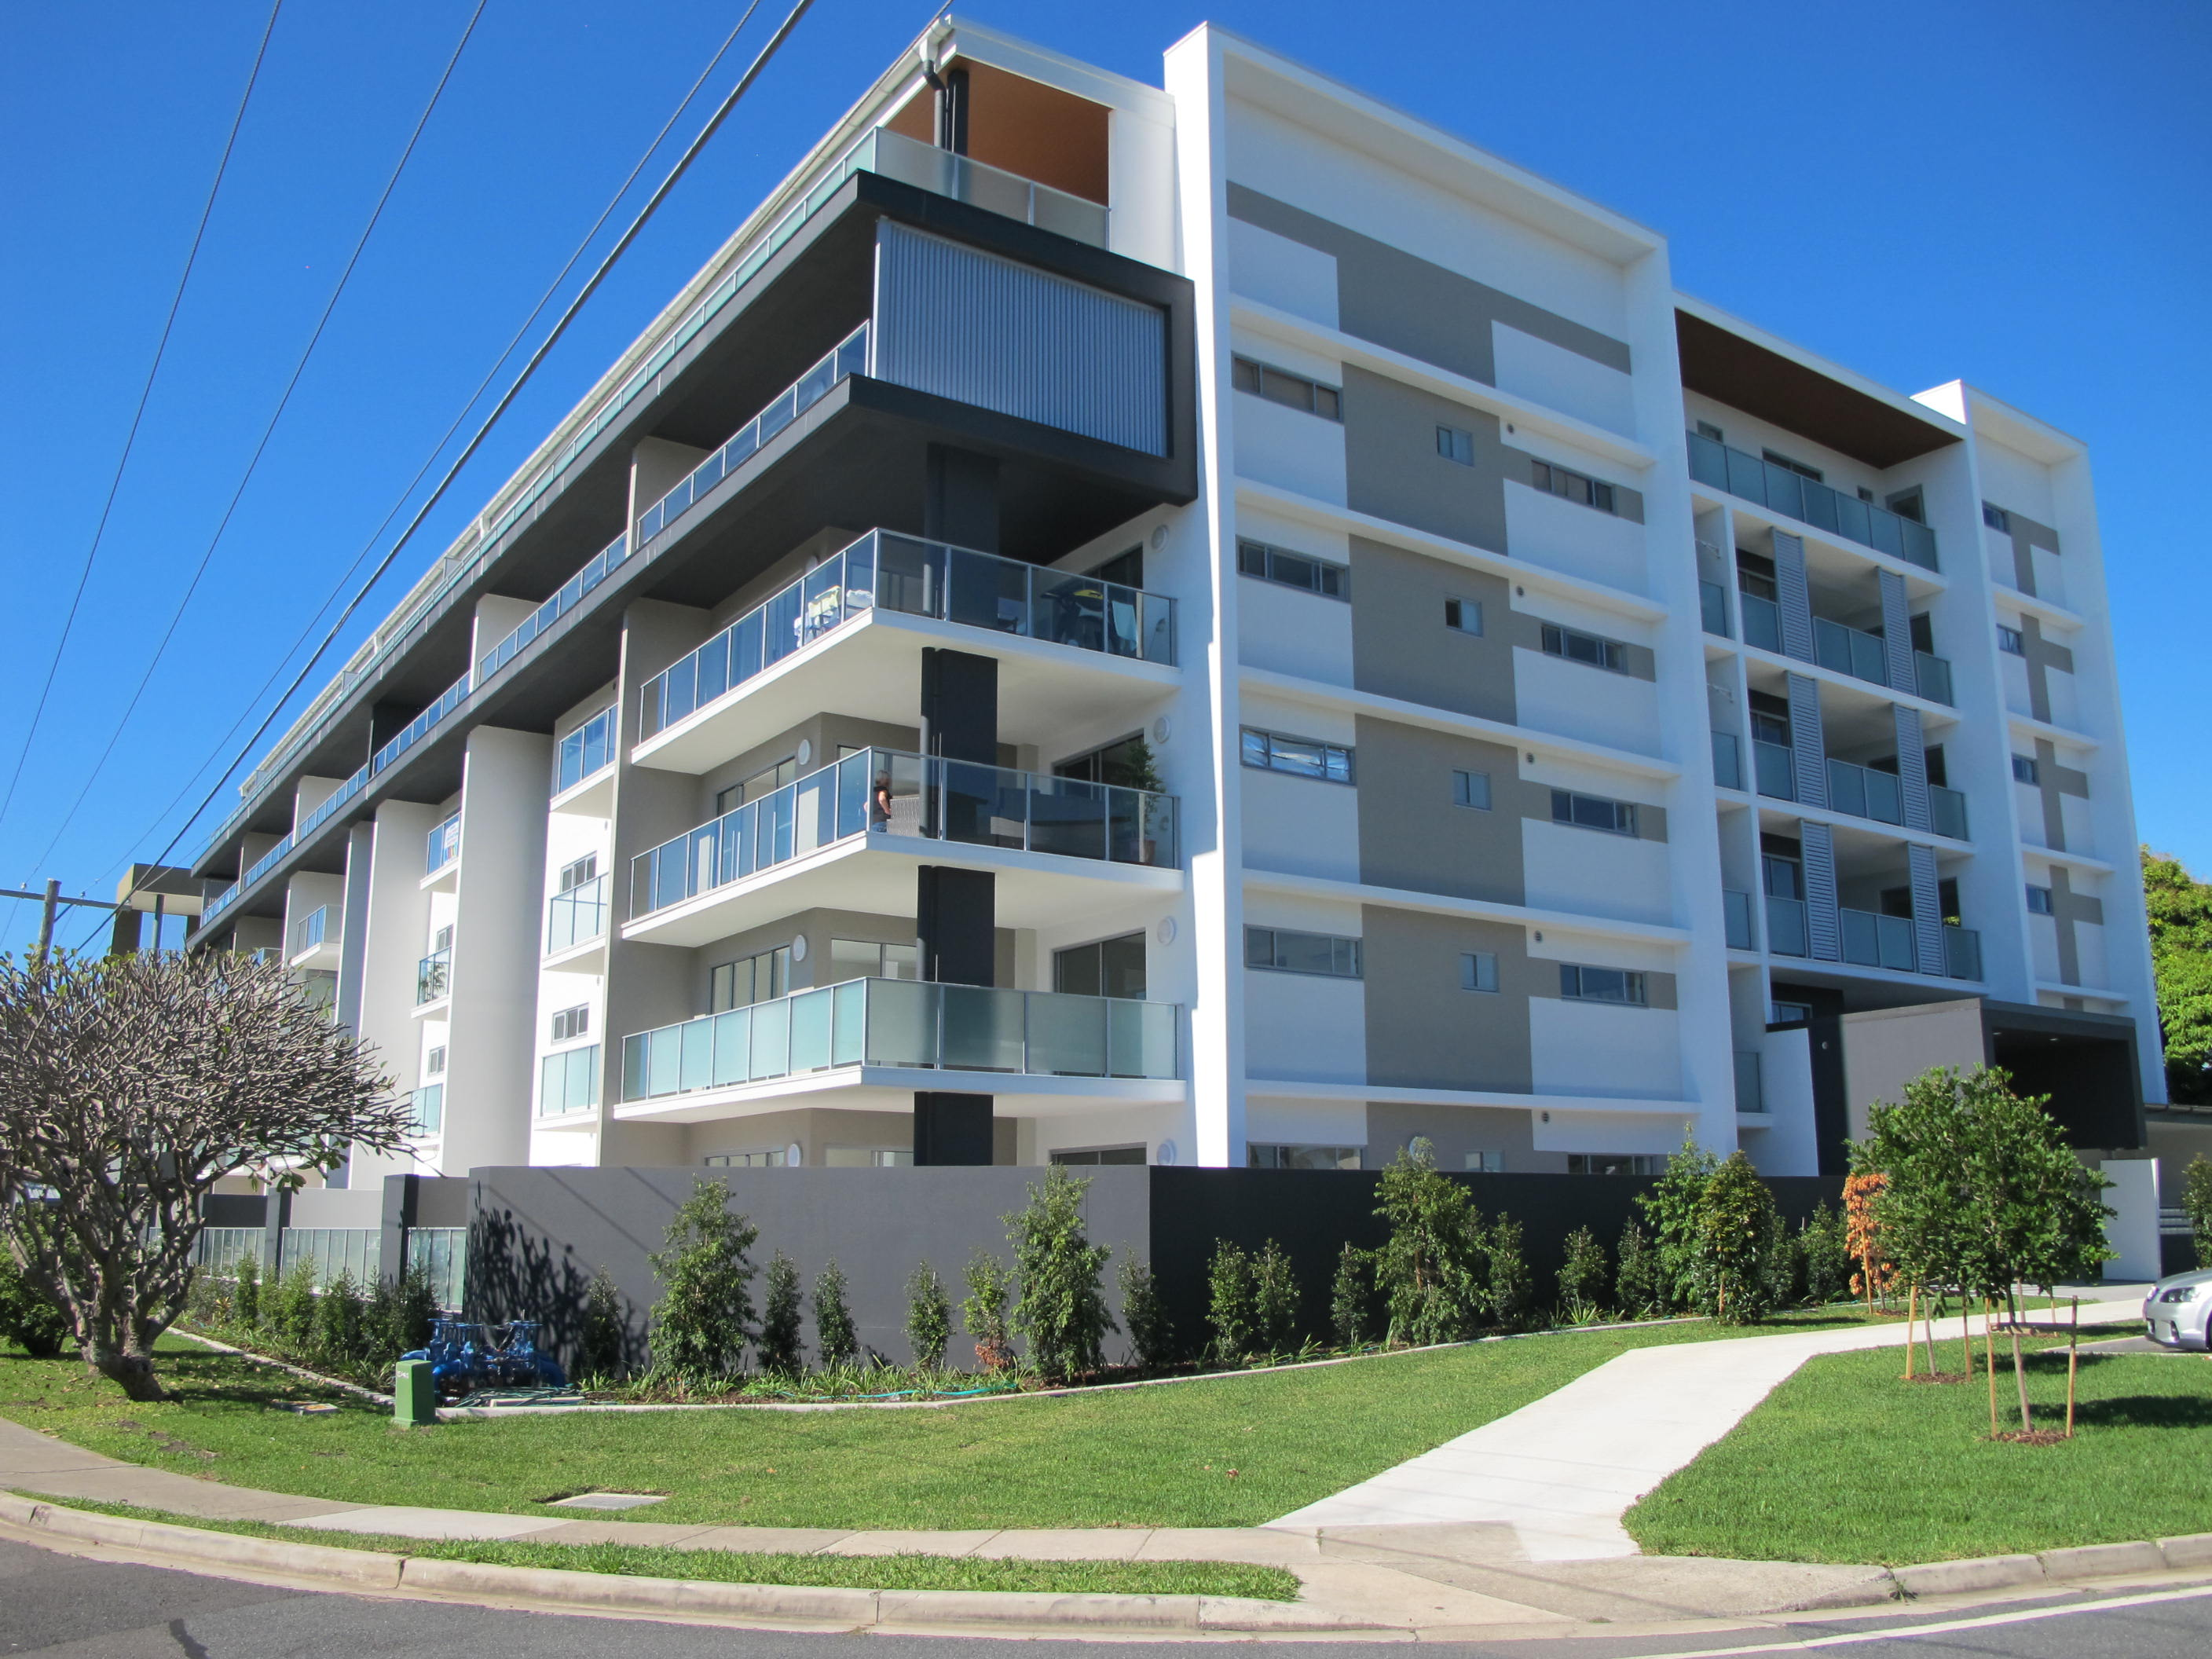 Cleveland qld 4163 2 beds apartment for sale starting - 2 bedroom units for rent brisbane ...